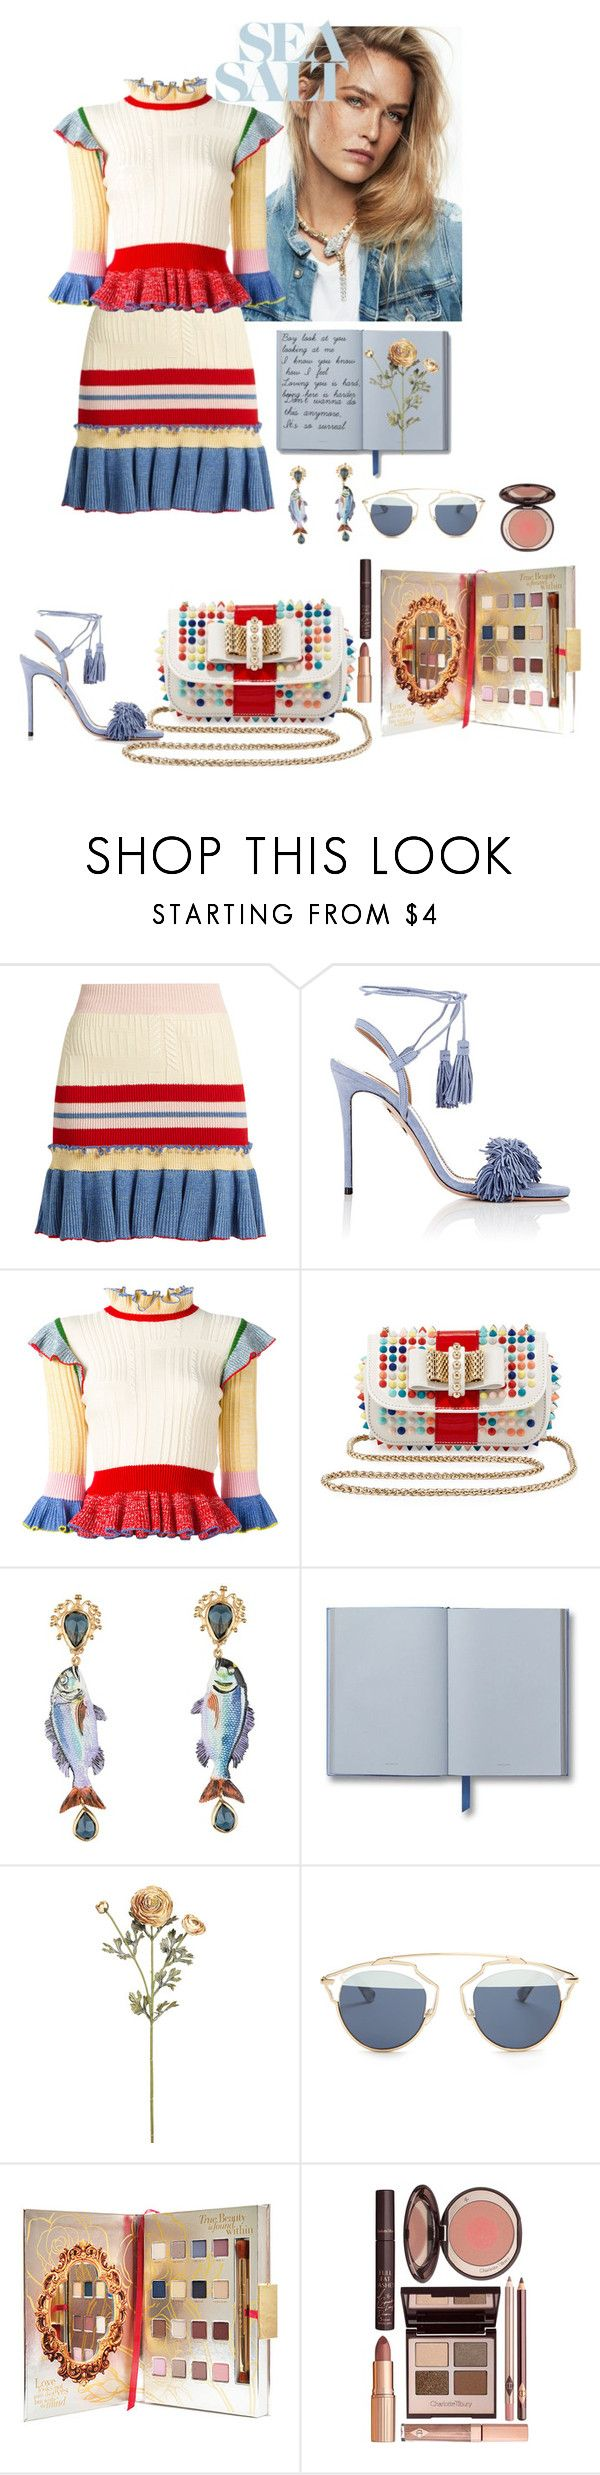 """""""Sea Salt"""" by antisocial-crybaby ❤ liked on Polyvore featuring Alexander McQueen, Aquazzura, Christian Louboutin, Dolce&Gabbana, Christian Dior, Disney and Charlotte Tilbury"""